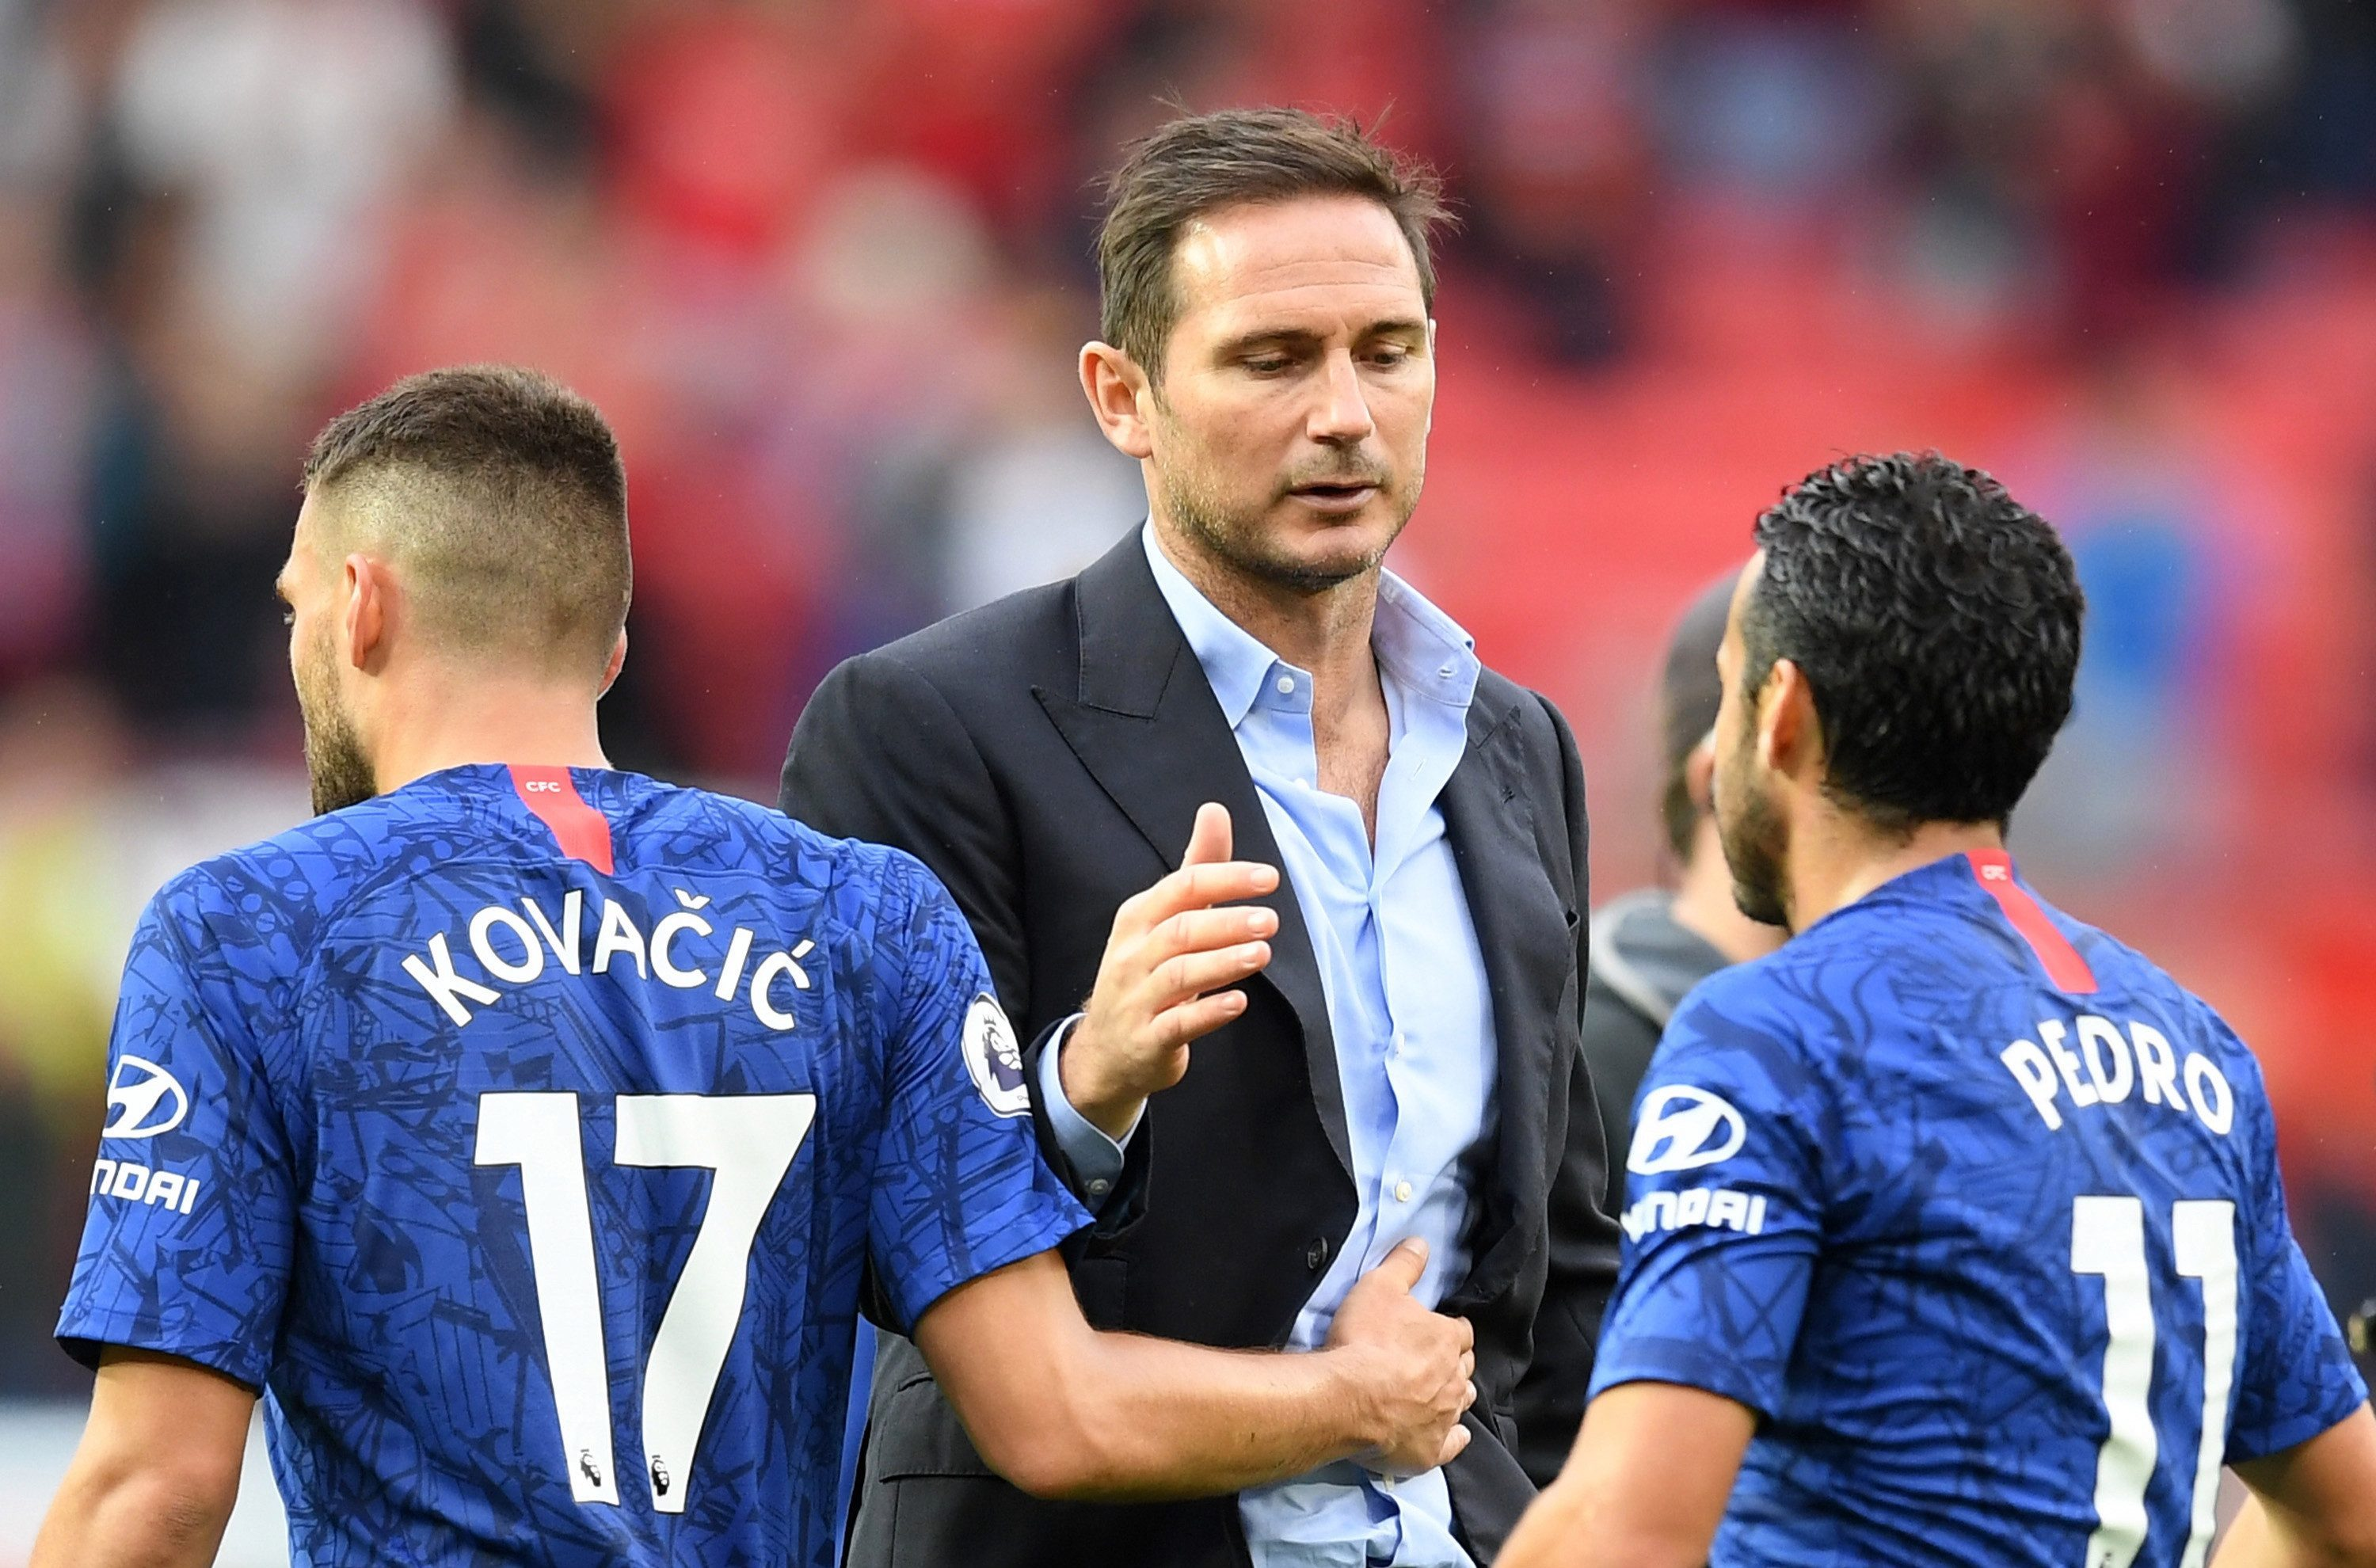 Chelsea are managed by Mourinho's former player Lampard